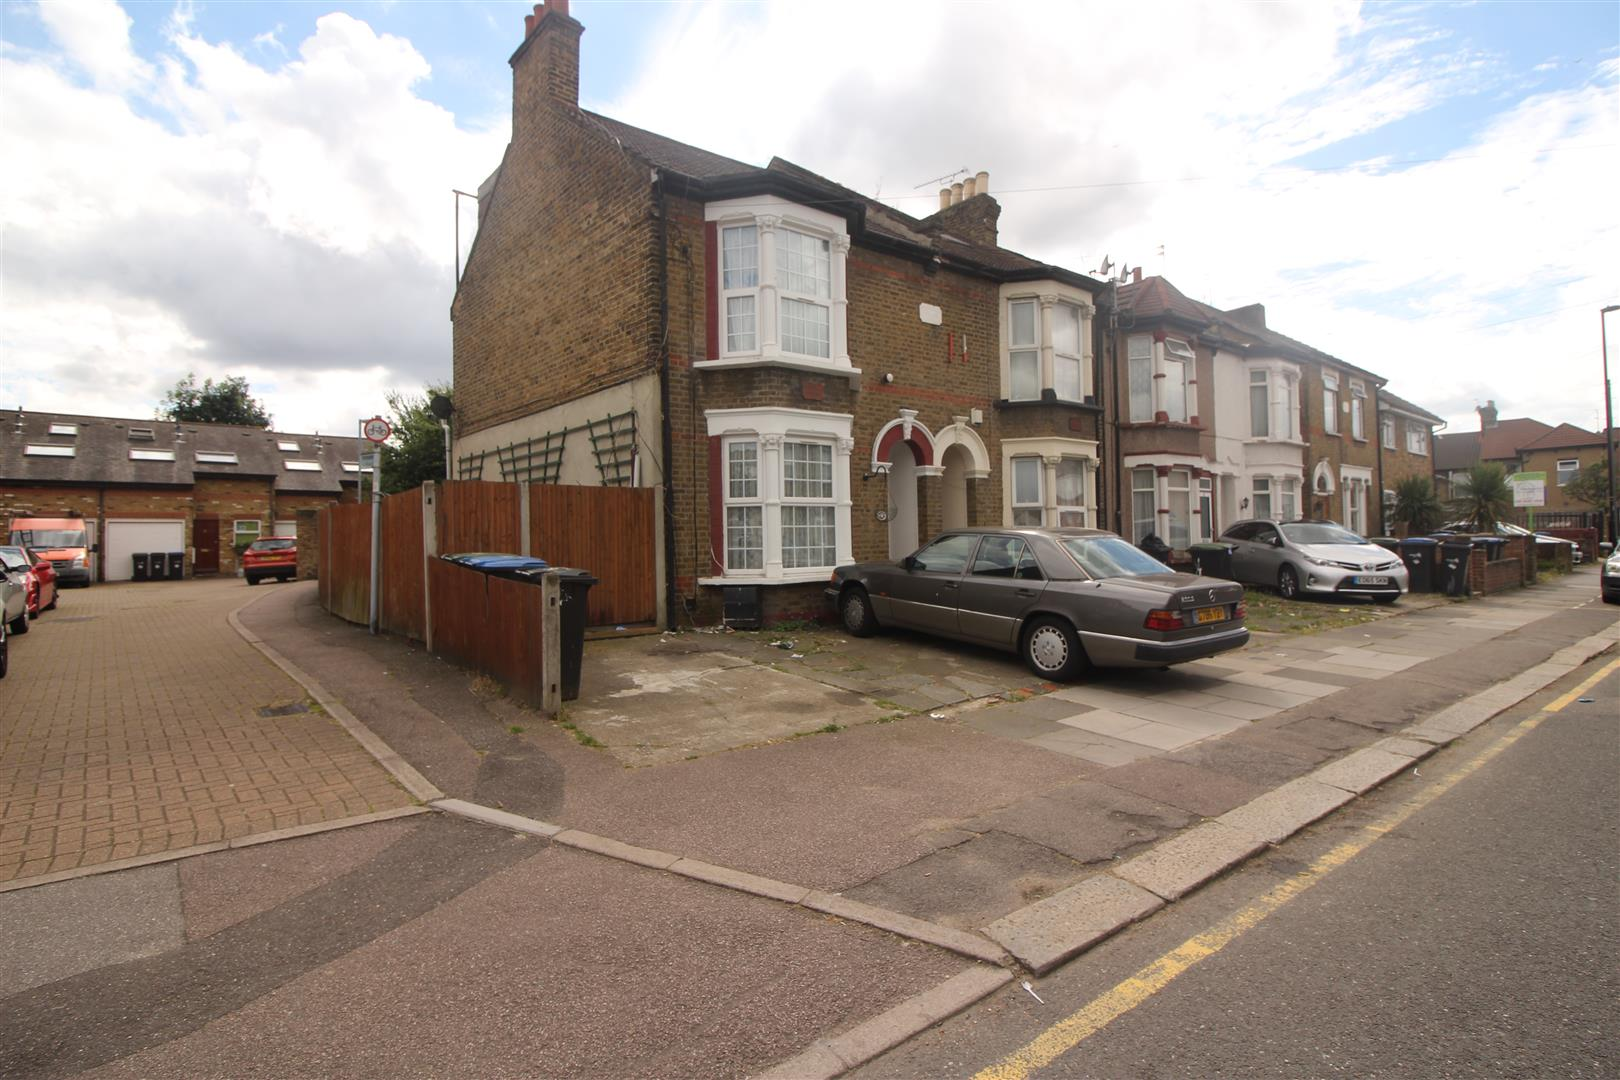 Durants Road, Enfield